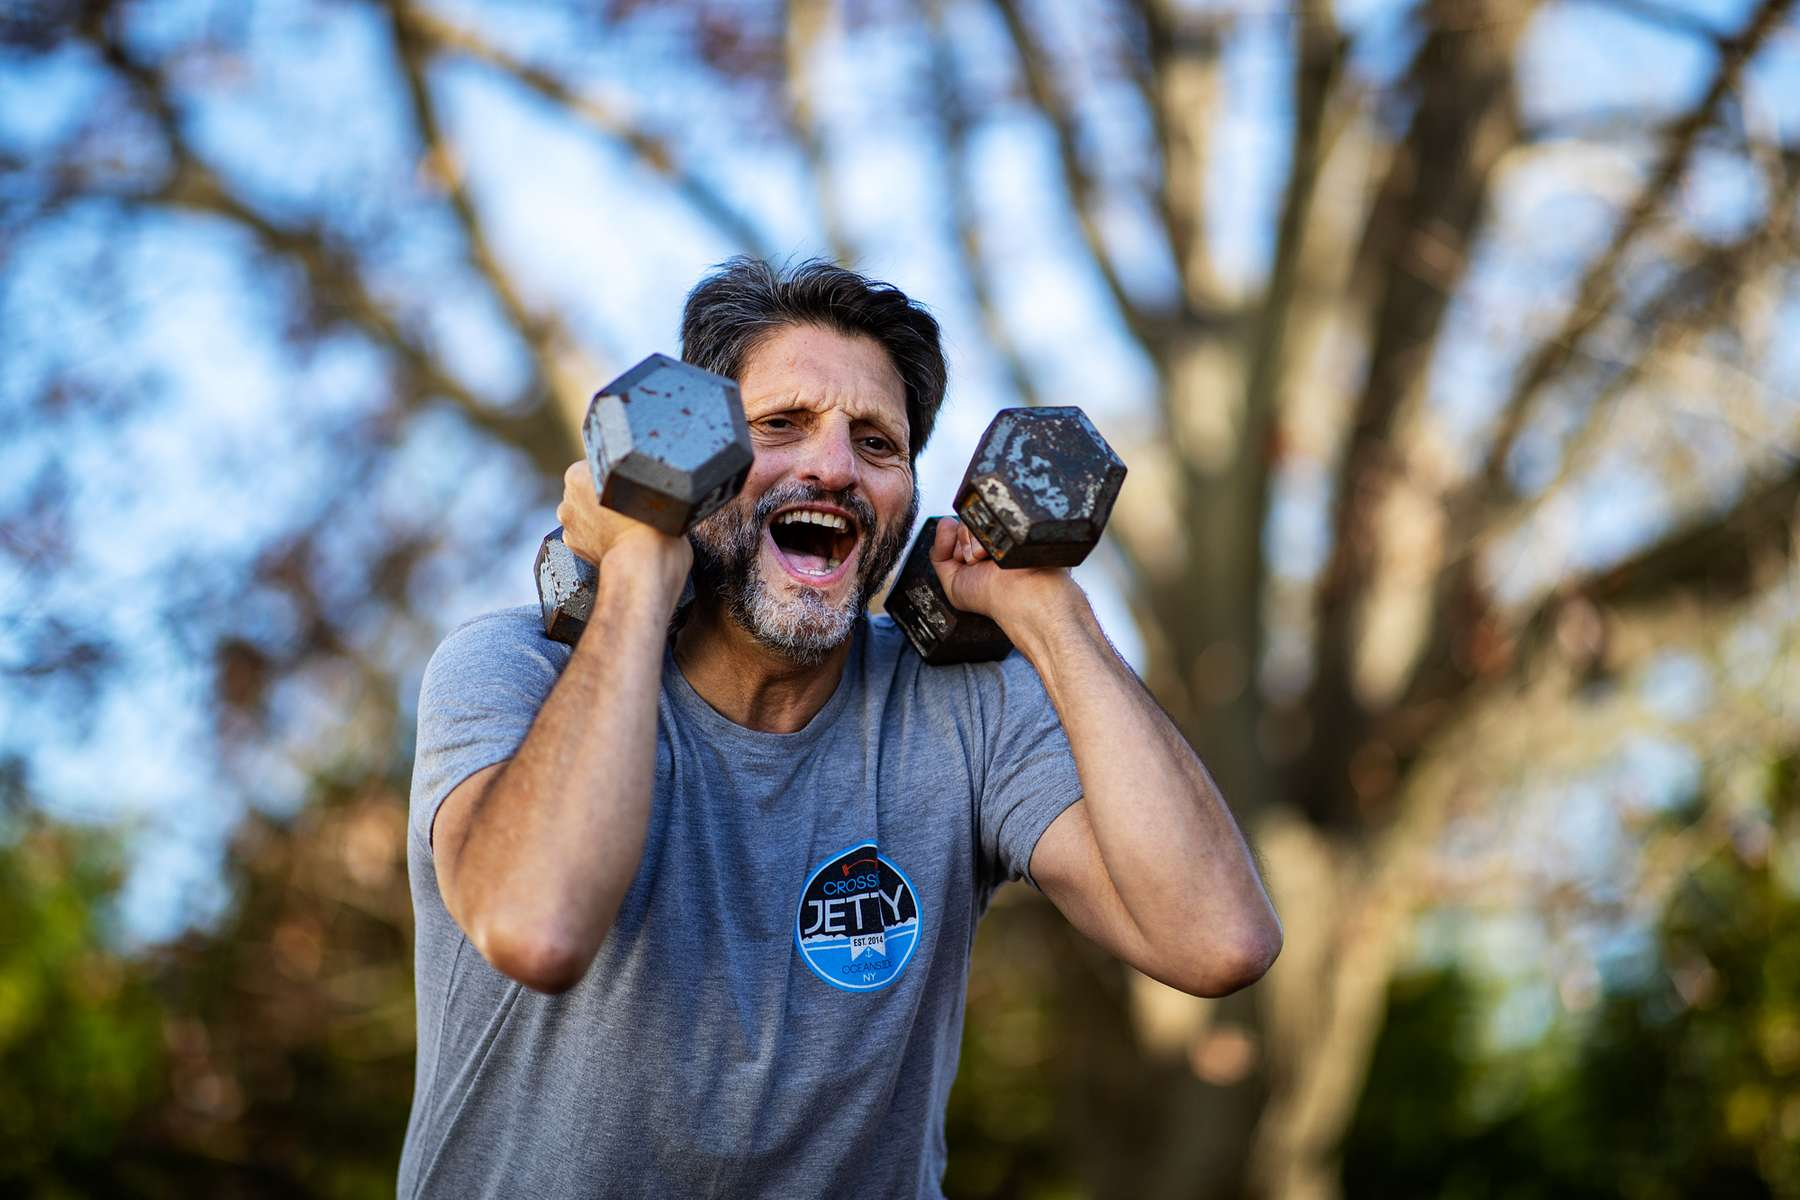 Jeff Levine exercises in his backyard with his virtual Fitness Trainer Dennis Guerrero on November 10th, 2020 in Oceanside, New York. In March of 2014, Dennis Guerrero and his business partner opened a gym on Long Island. The pair shared a passion for fitness, a dream of creating a local community of like-minded people and a willingness to take a risk. Over the next six years, hundreds of members experienced and embraced a unique environment that fostered a palpable energy, helping athletes of all ages and abilities reach their potential.  The gym became a place to share achievements, work through losses and overcome illness. But like so many other businesses, it seemingly had no way of overcoming the financial impact and ongoing uncertainty of a global pandemic. With the arrival of Covid-19, the gym shut its doors back in March, with no idea when it would reopen. The owners, though, were far from done. They lent out every piece of equipment they owned to the gym's members, continued to pay their staff and worked to set up outdoor classes in hopes of keeping their membership active and healthy. As the shutdown stretched on, it became clear that the physical gym was closed for good.  They have since reinvented themselves and are now called Life Outside the Box.  Their business model has changed drastically, and all their workouts have gone virtual.  The workouts are conducted by a small group of fitness trainers led by Guerrero.  The members pay a monthly fee and can take live Zoom fitness classes.  They are coached by the virtual trainers in real time.  More and more people have reconstructed their garages, spare rooms, backyards, and basements into home gyms since the COVID-19 pandemic hit the United States.